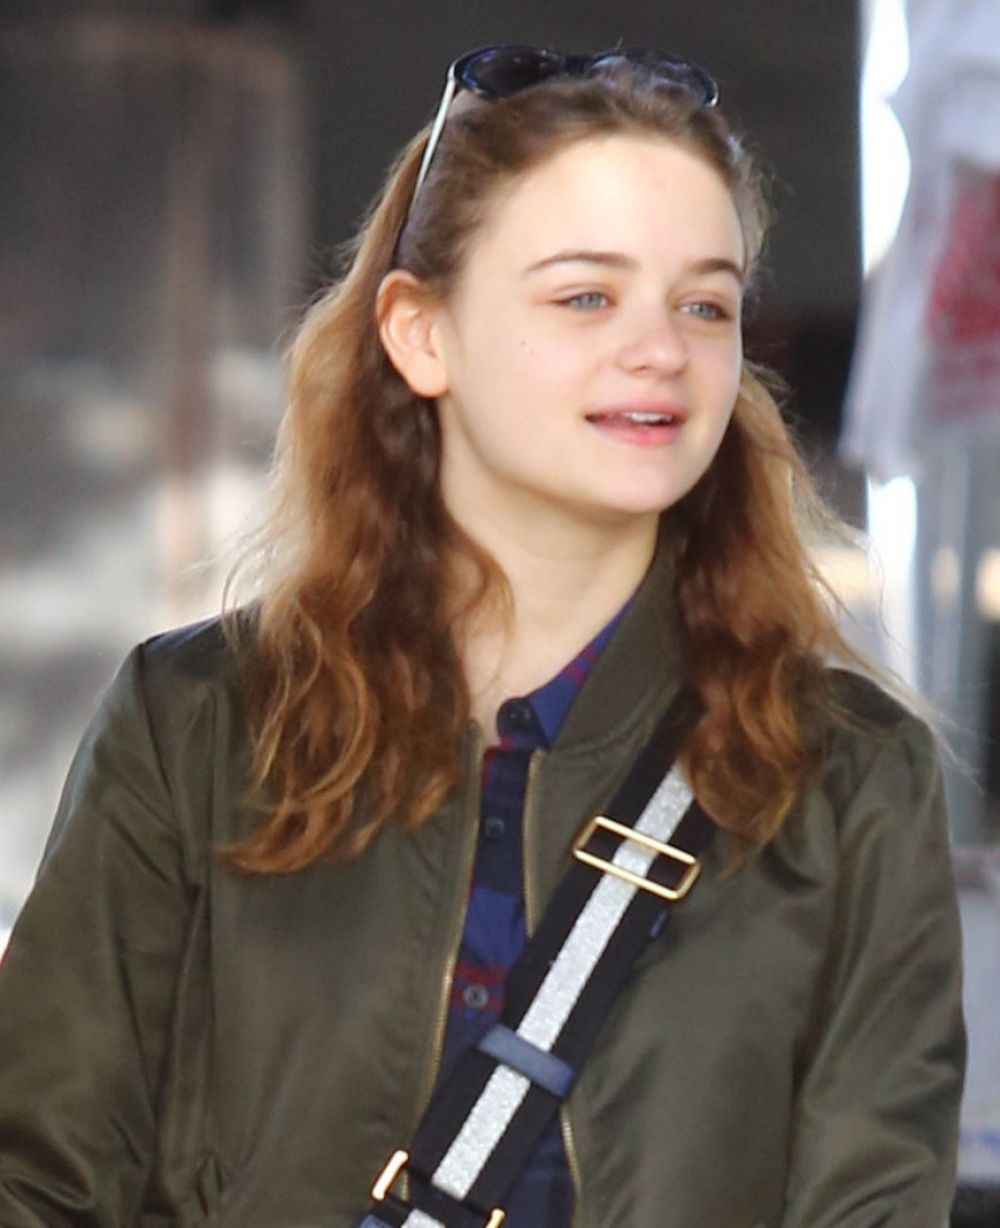 Photos of Joey King whiteout makeup Shopping at Farmer's Market in Studio City